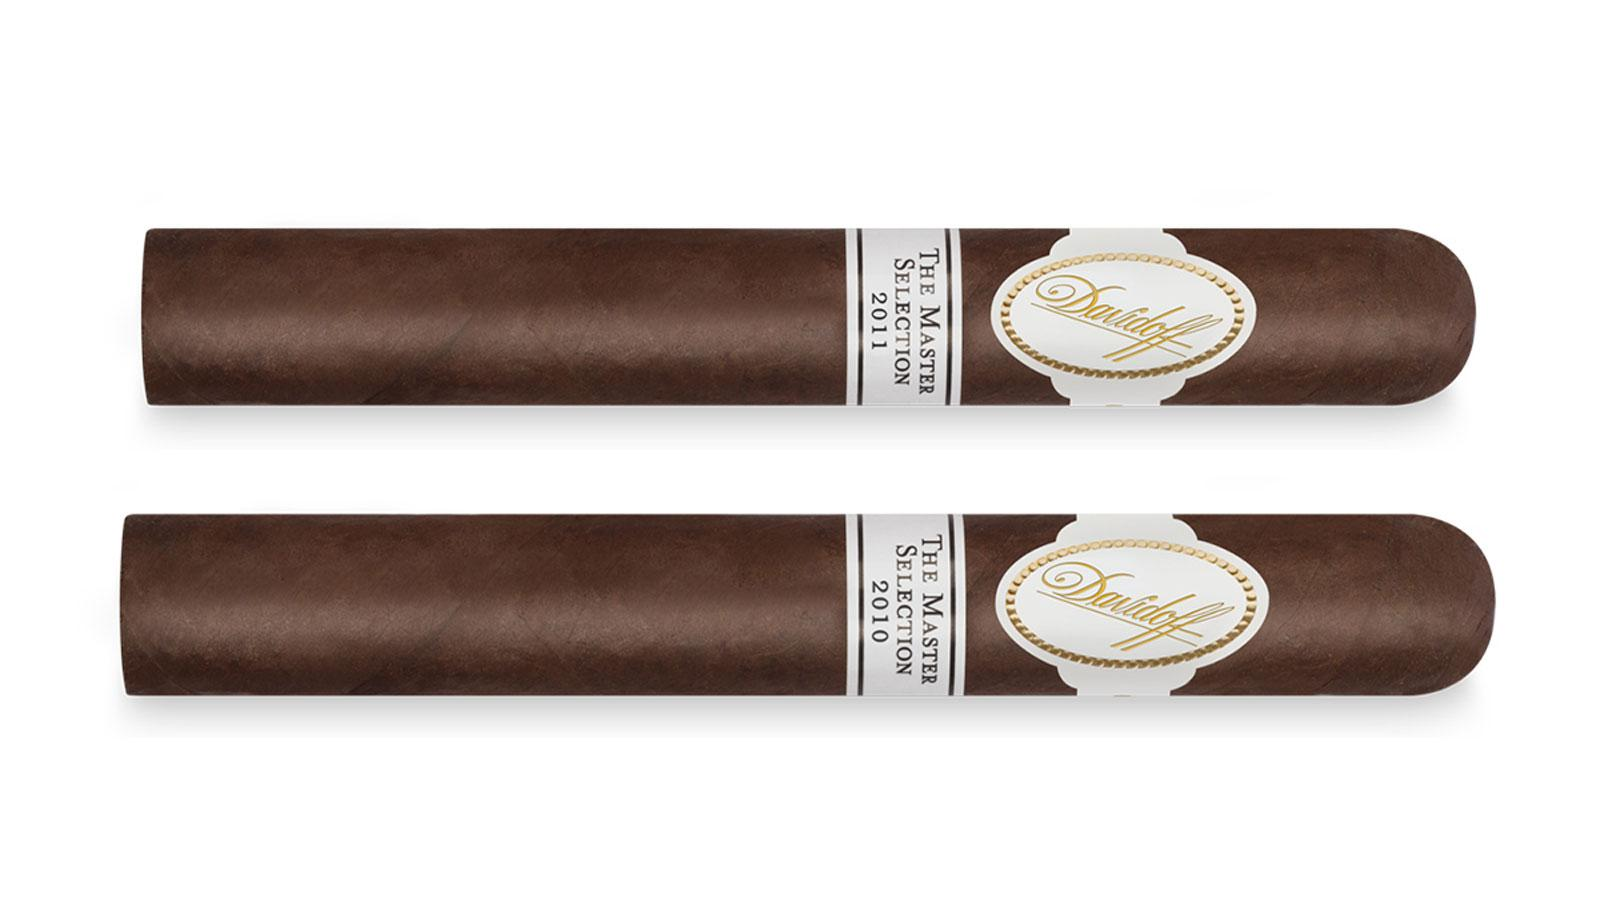 Davidoff Ships Master Selection Series 2010 and 2011